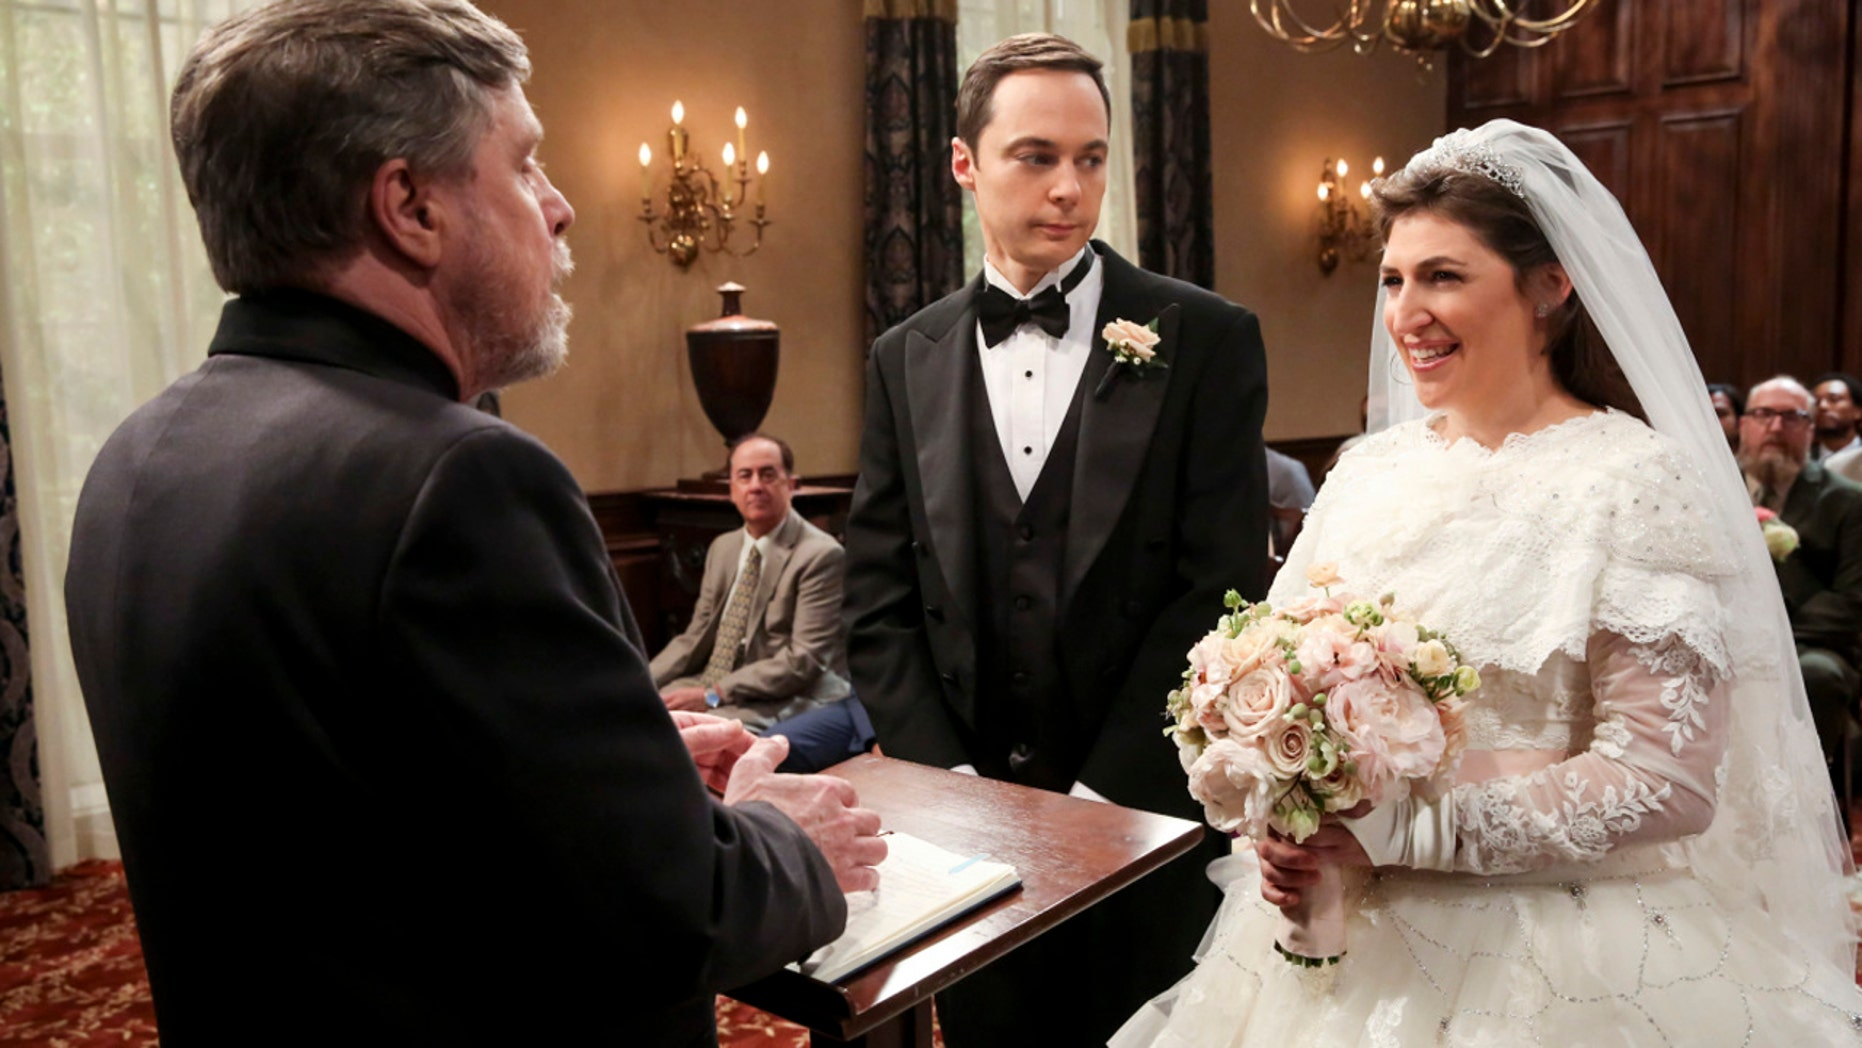 Mayim Bialik admits that she didn't feel like a pretty bride during her TV wedding to co-star Jim Parsons on the season 11 finale of the show.